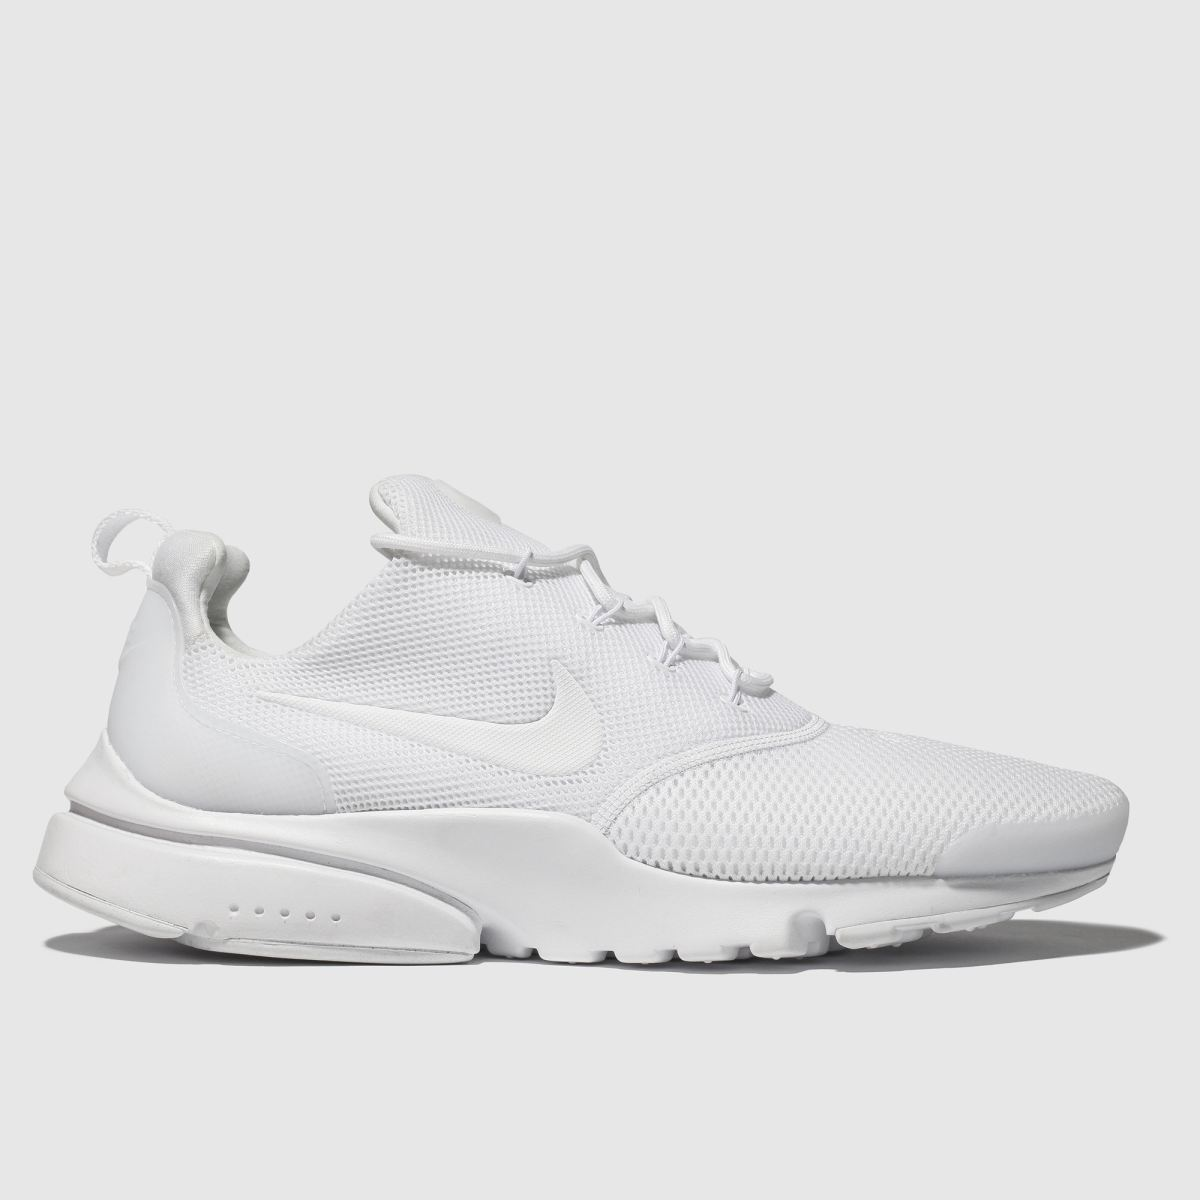 Nike White Presto Fly Trainers